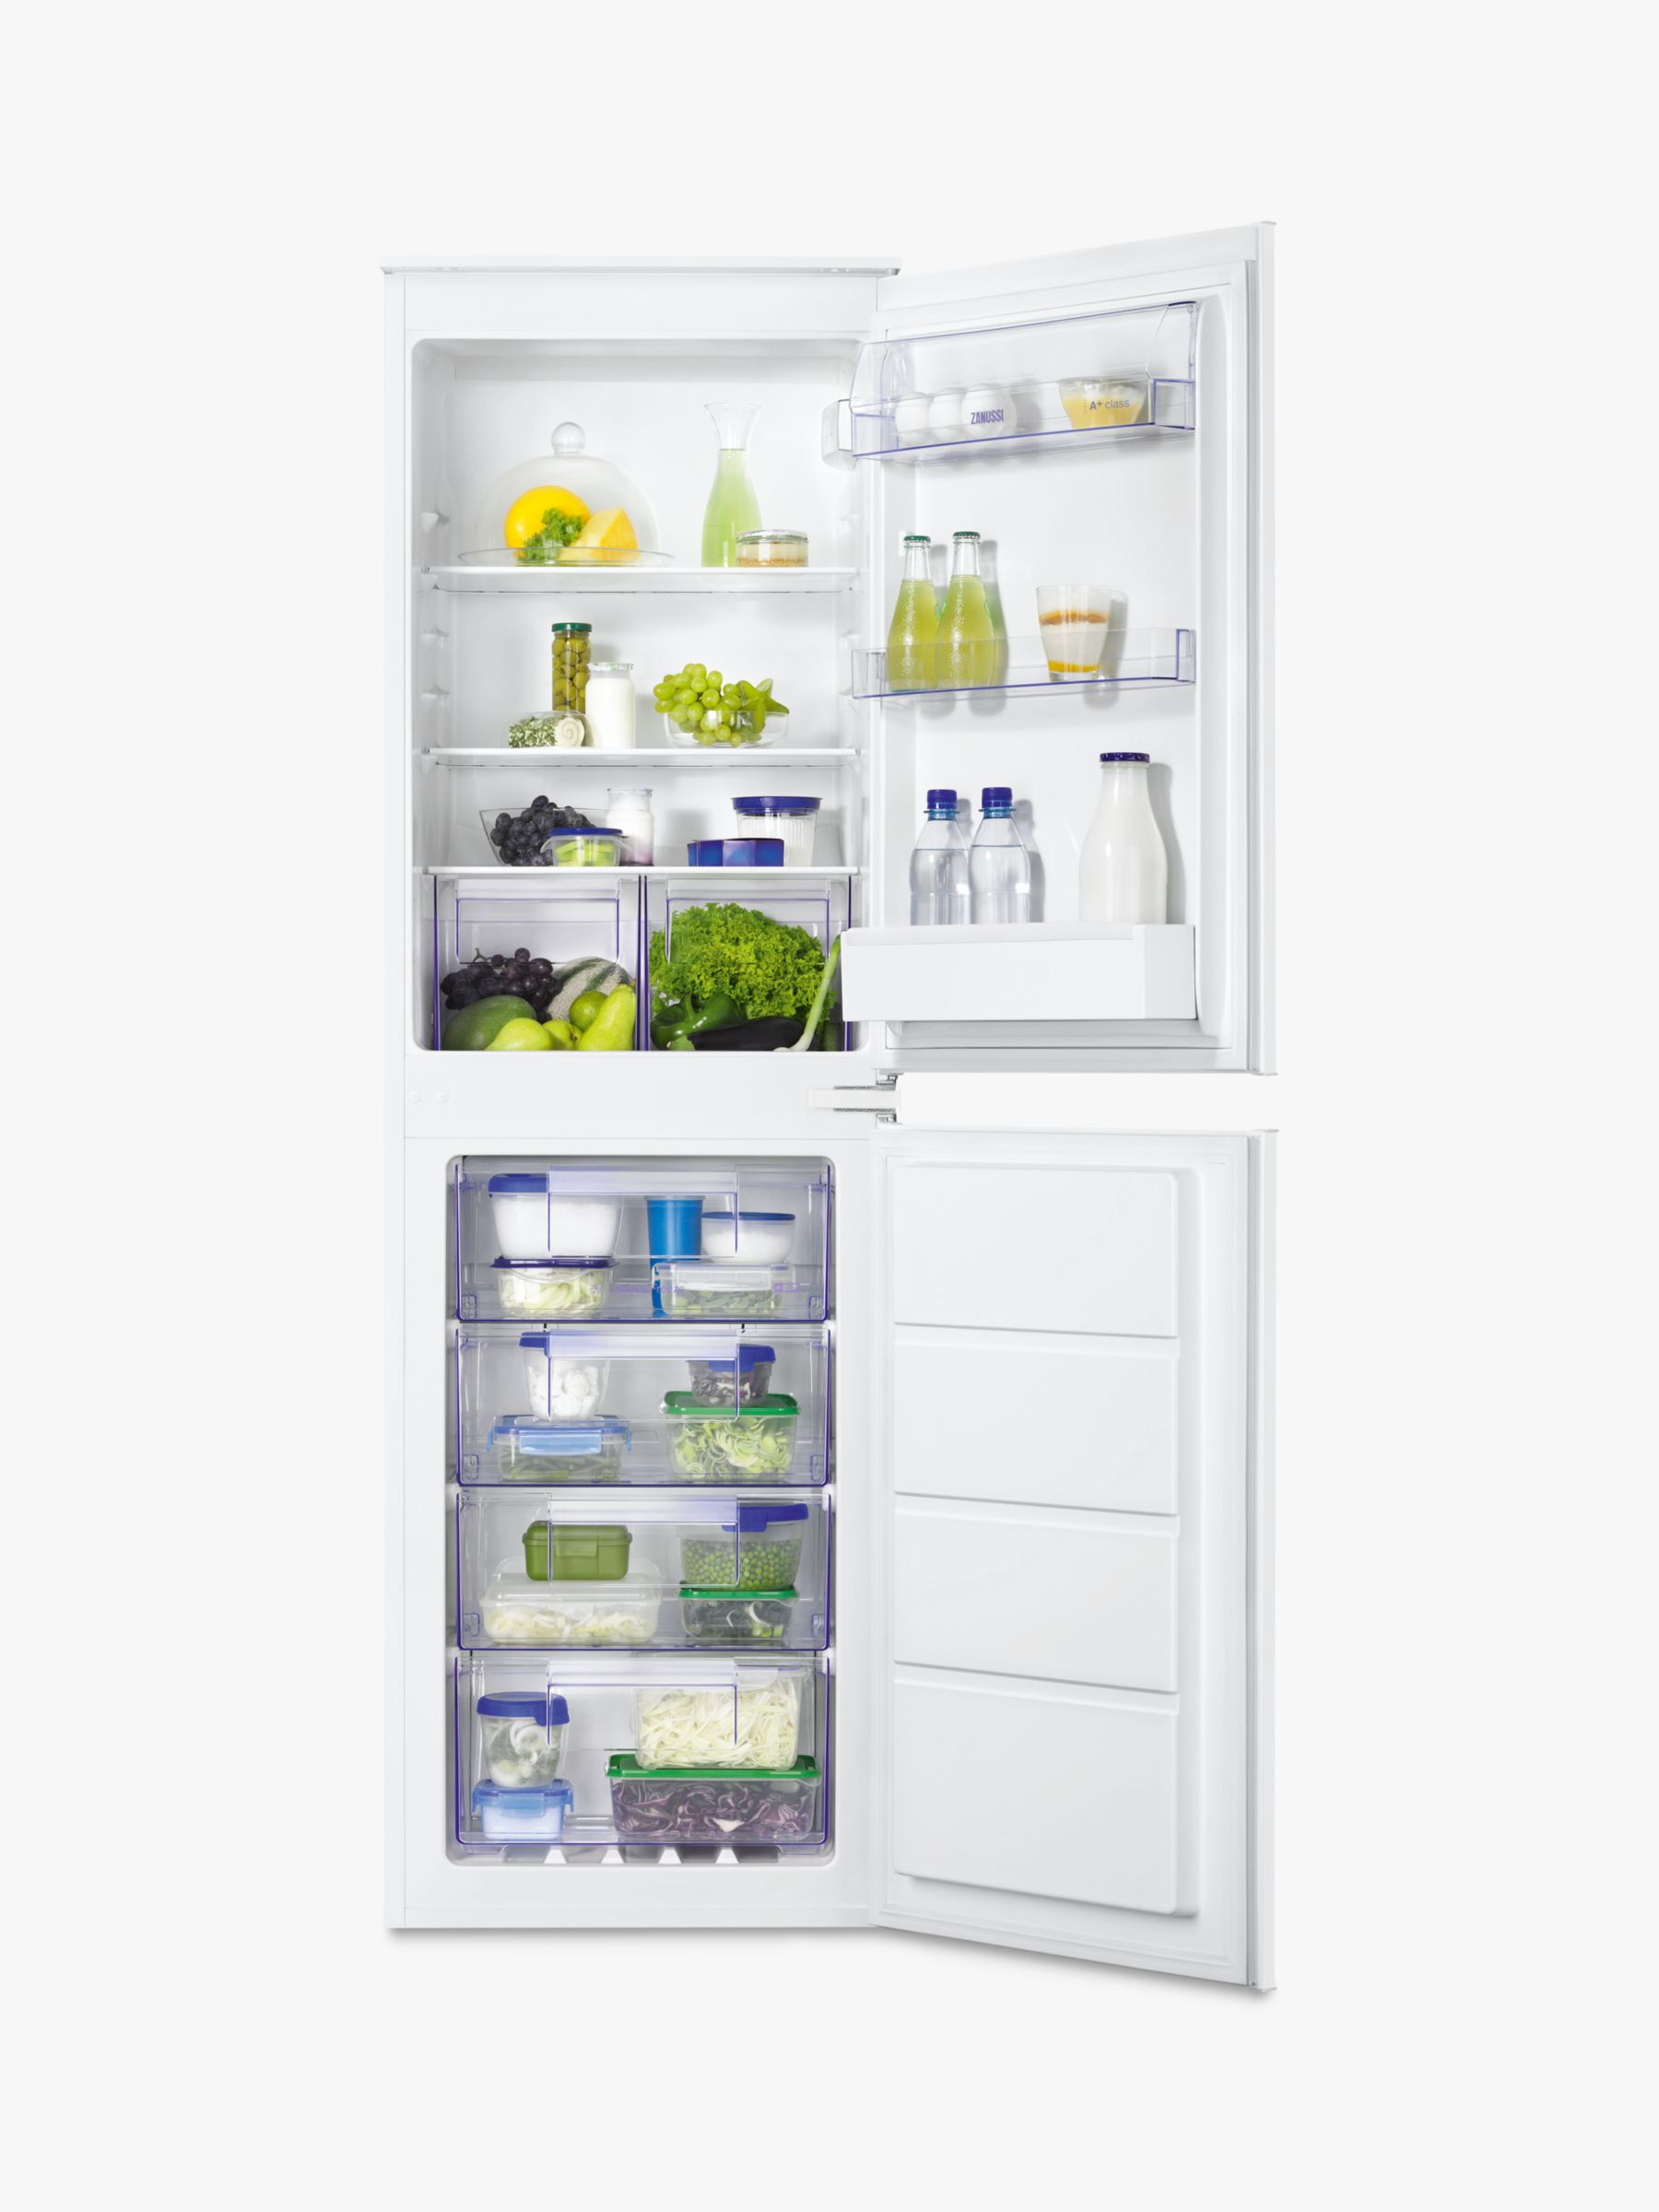 Zanussi Zanussi ZBB27640SV Integrated Fridge Freezer, A+ Energy Rating, 54cm Wide, White